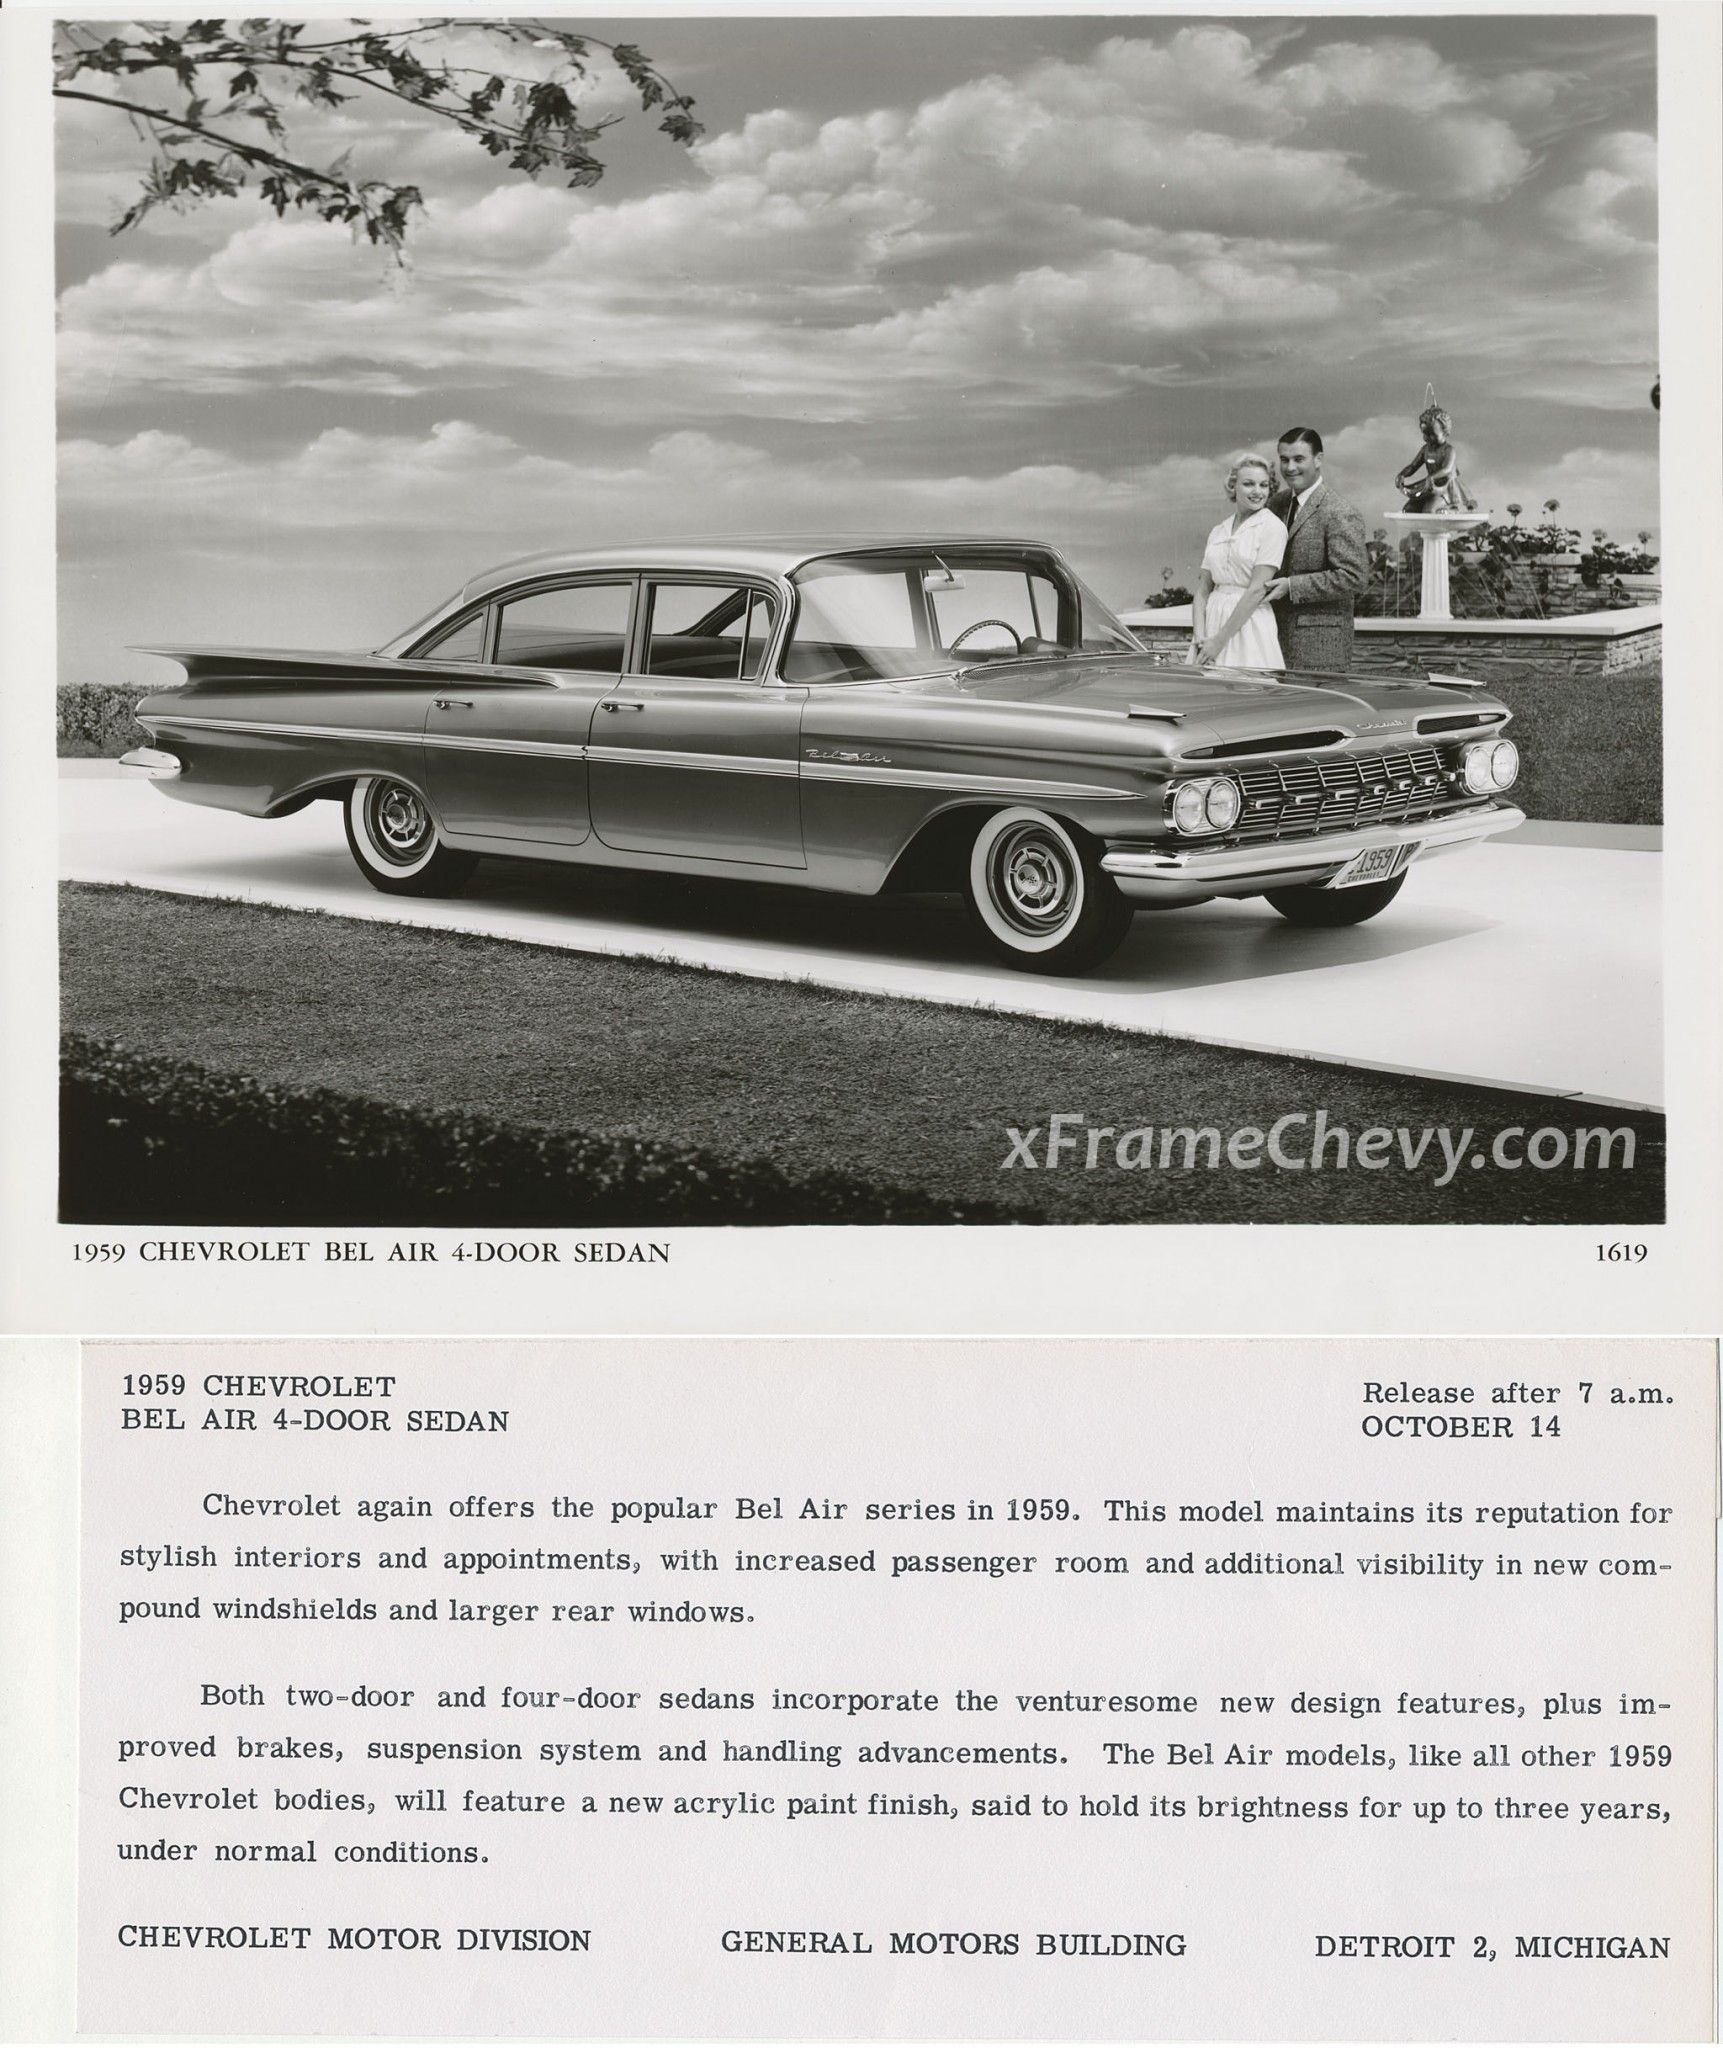 photo GM Photographic - 1959 Chevrolet Bel Air 4-door Sedan